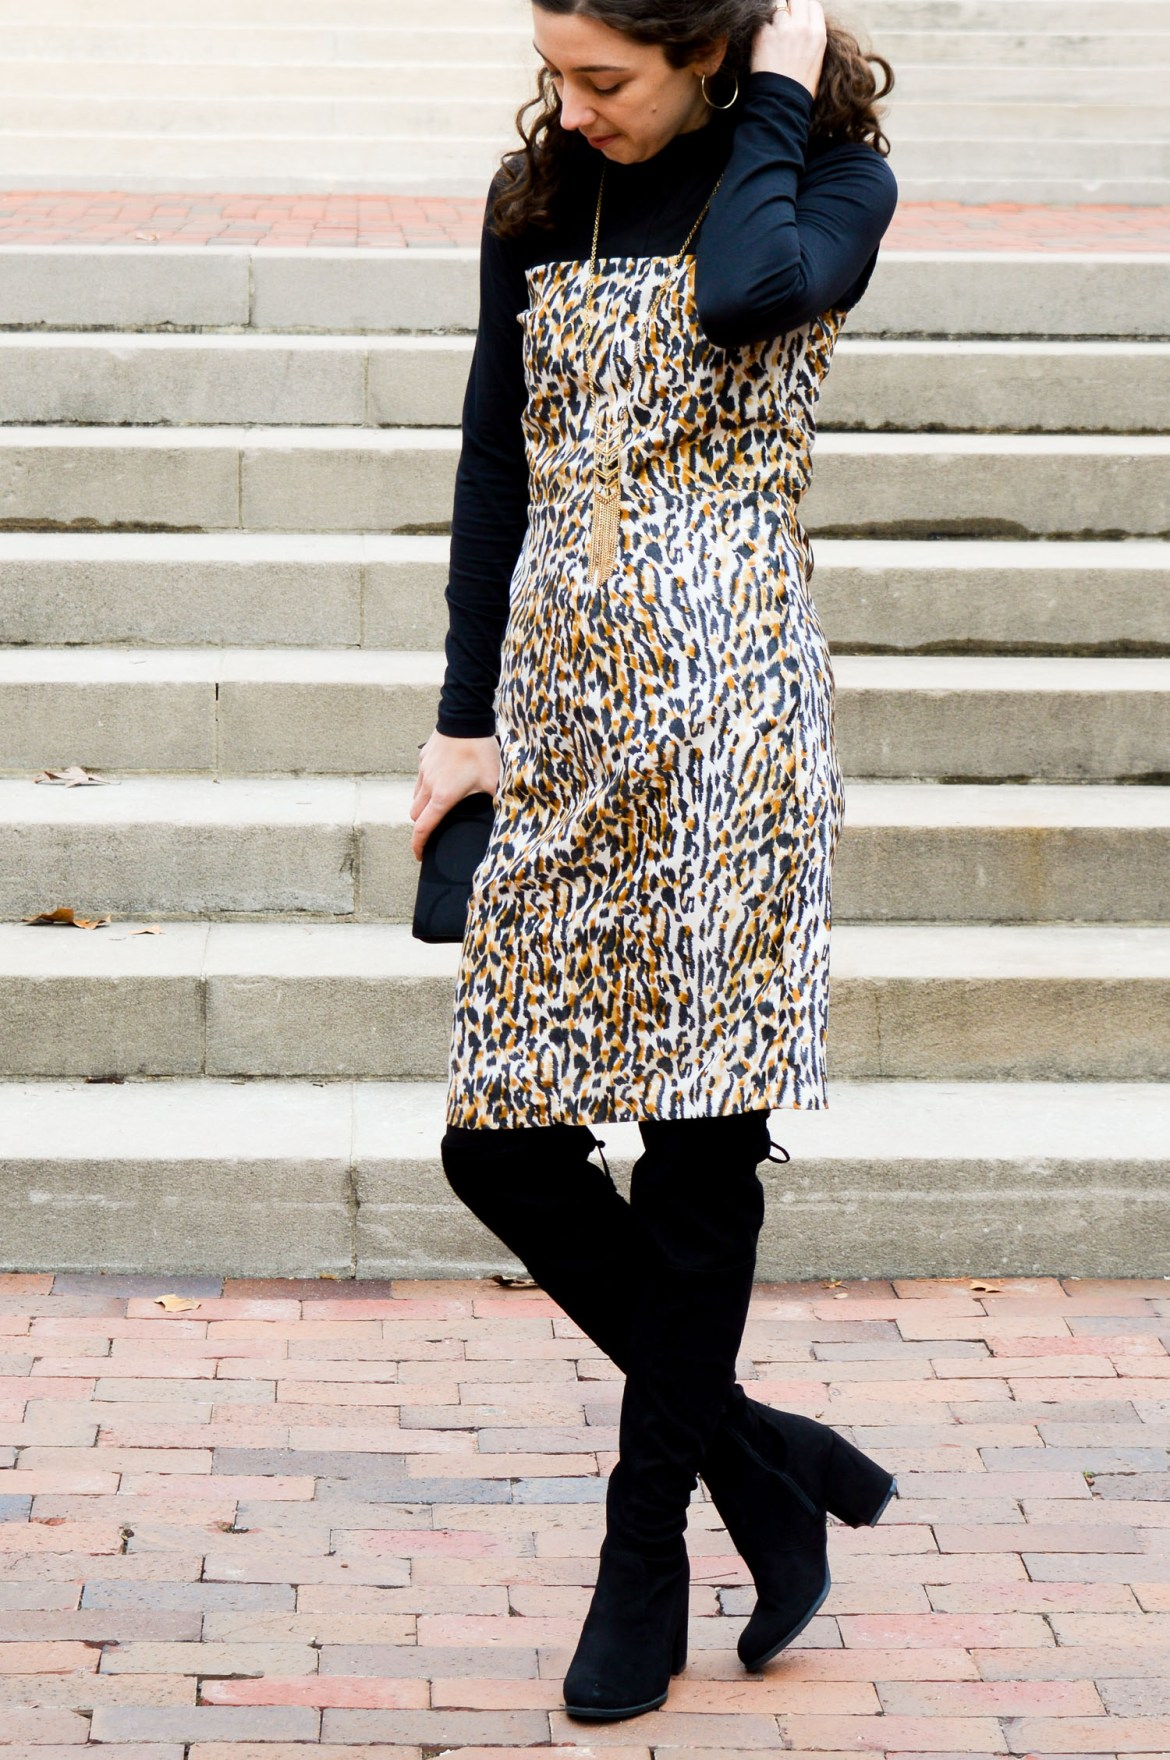 Leopard print dress + black turtleneck // Hunting for Pink Flamingos